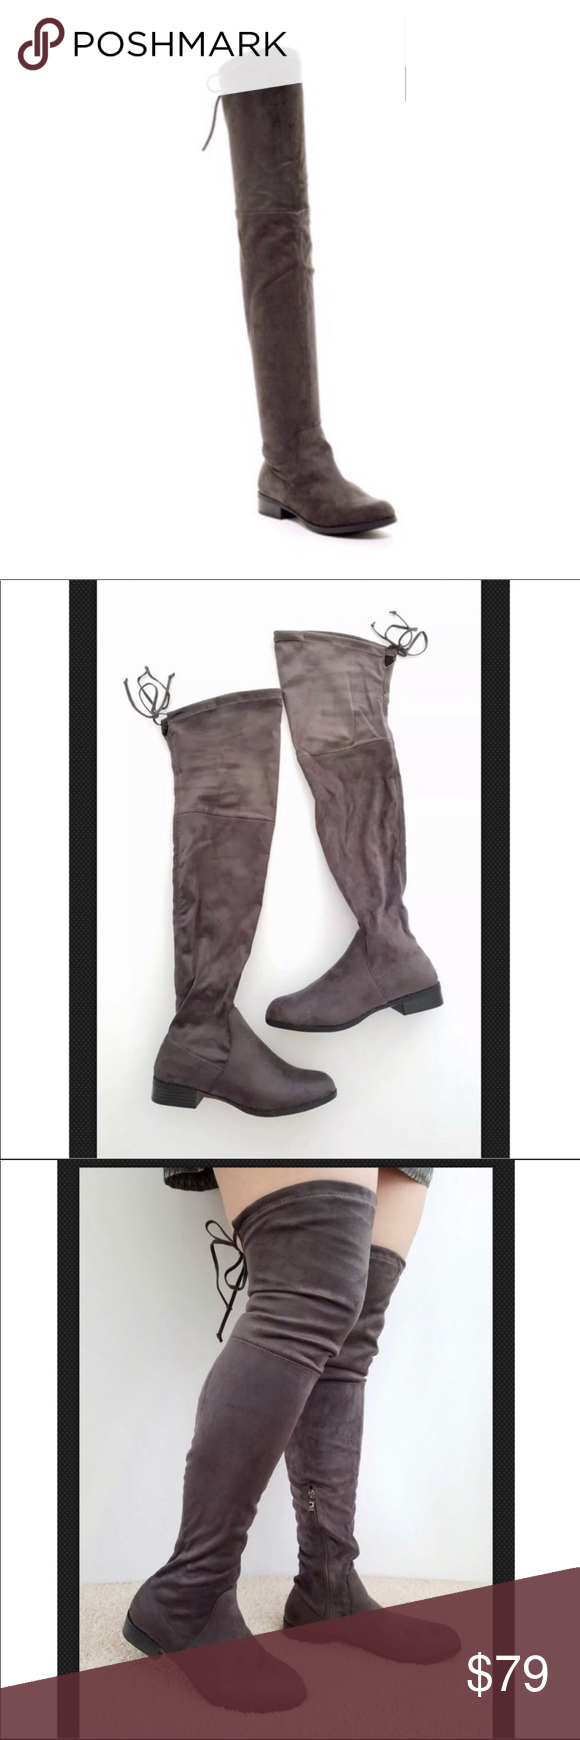 604d1d447 Catherine Malandrino Gray Over The Knee Boots Catherine Malandrino Faux  Suede Over The Knee Boots NEW with box Size 9 Dark Gray color Side zip  closure ...